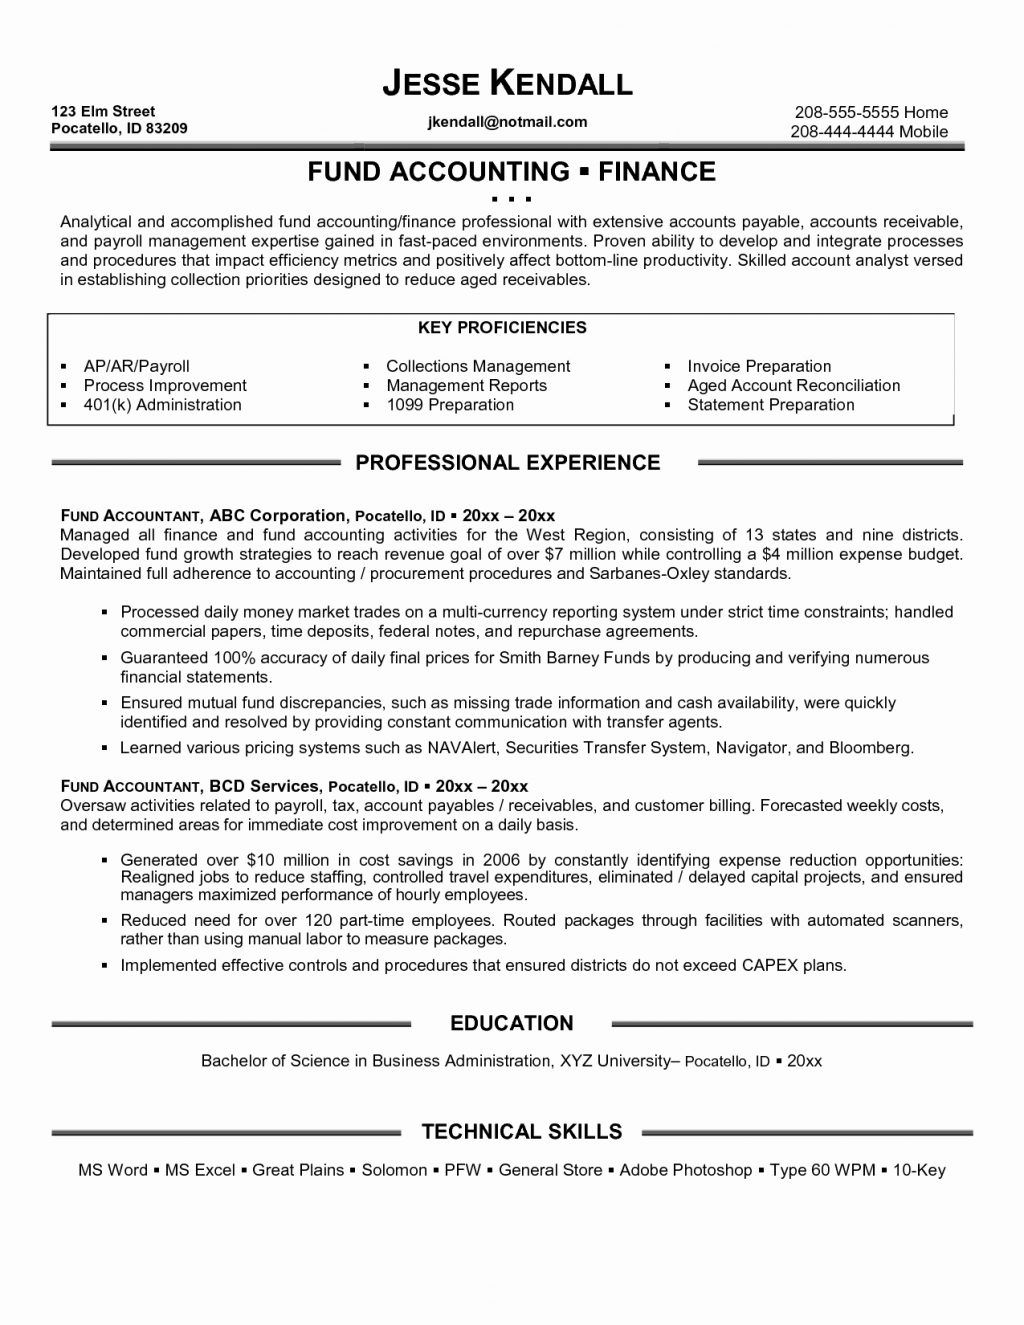 Accounts Payable And Receivable Resume Amusing Staff Accountant Resume Summary Best Staff Accountant Resume Exle .